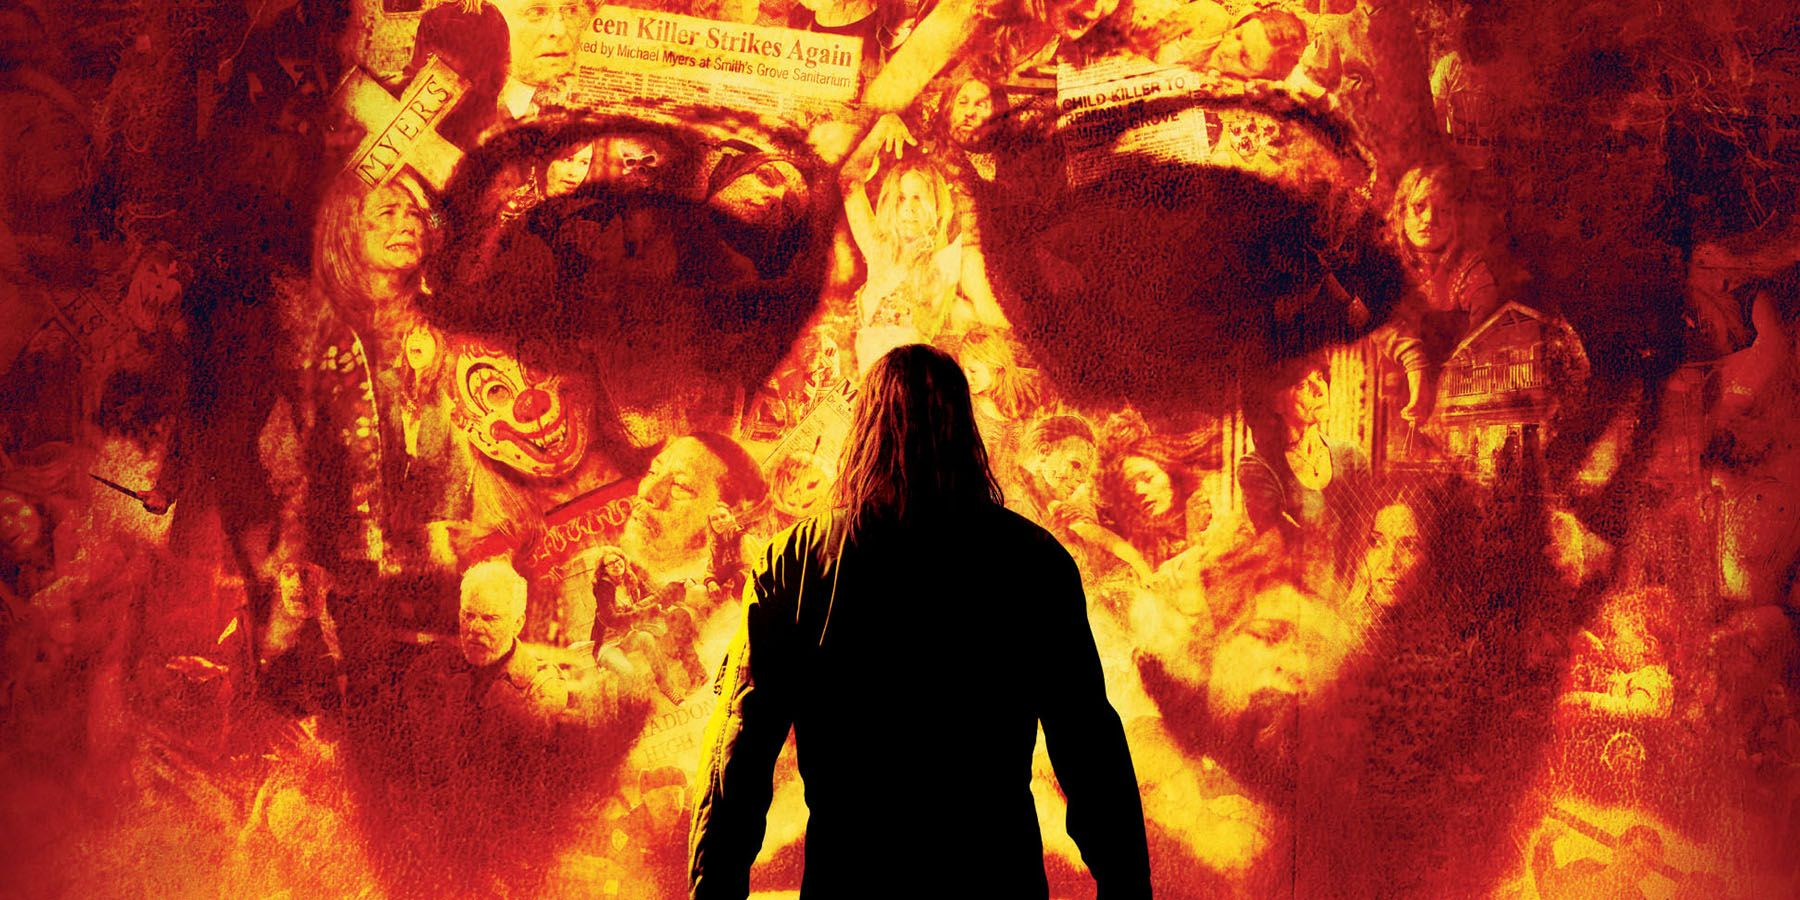 Halloween: Rob Zombie Says Making Movies Was 'A Miserable Experience'